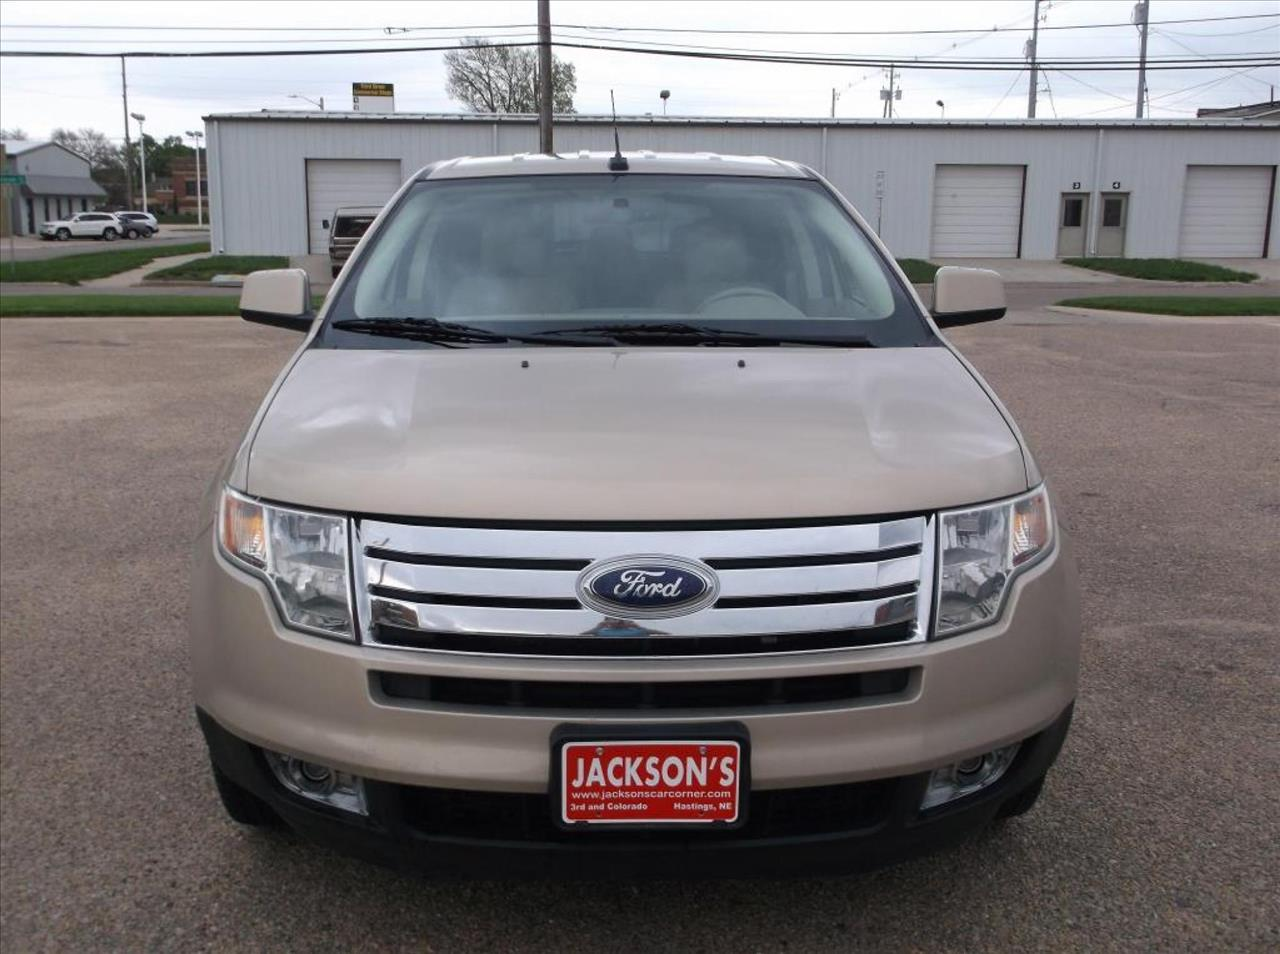 2007 Ford Edge for sale at Jacksons Car Corner Inc in Hastings NE